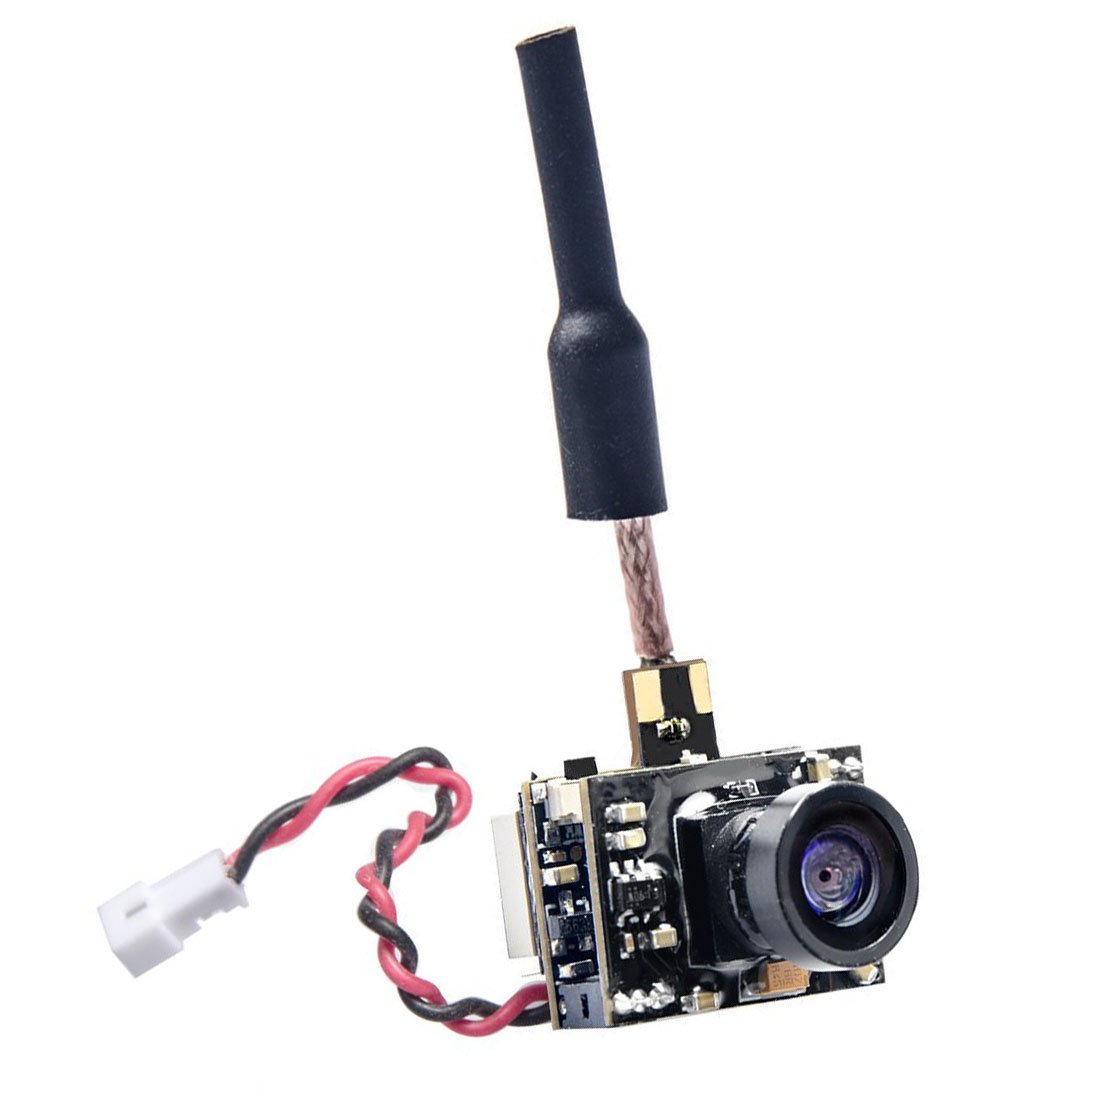 GOQOTOMO GD02 200mW 5.8GHz 40CH FPV Video Transmitter with Dipole Brass Antenna Ultra Micro AIO NTSC 600TVL Camera Combo for FPV Indoor Racing by GOQOTOMO